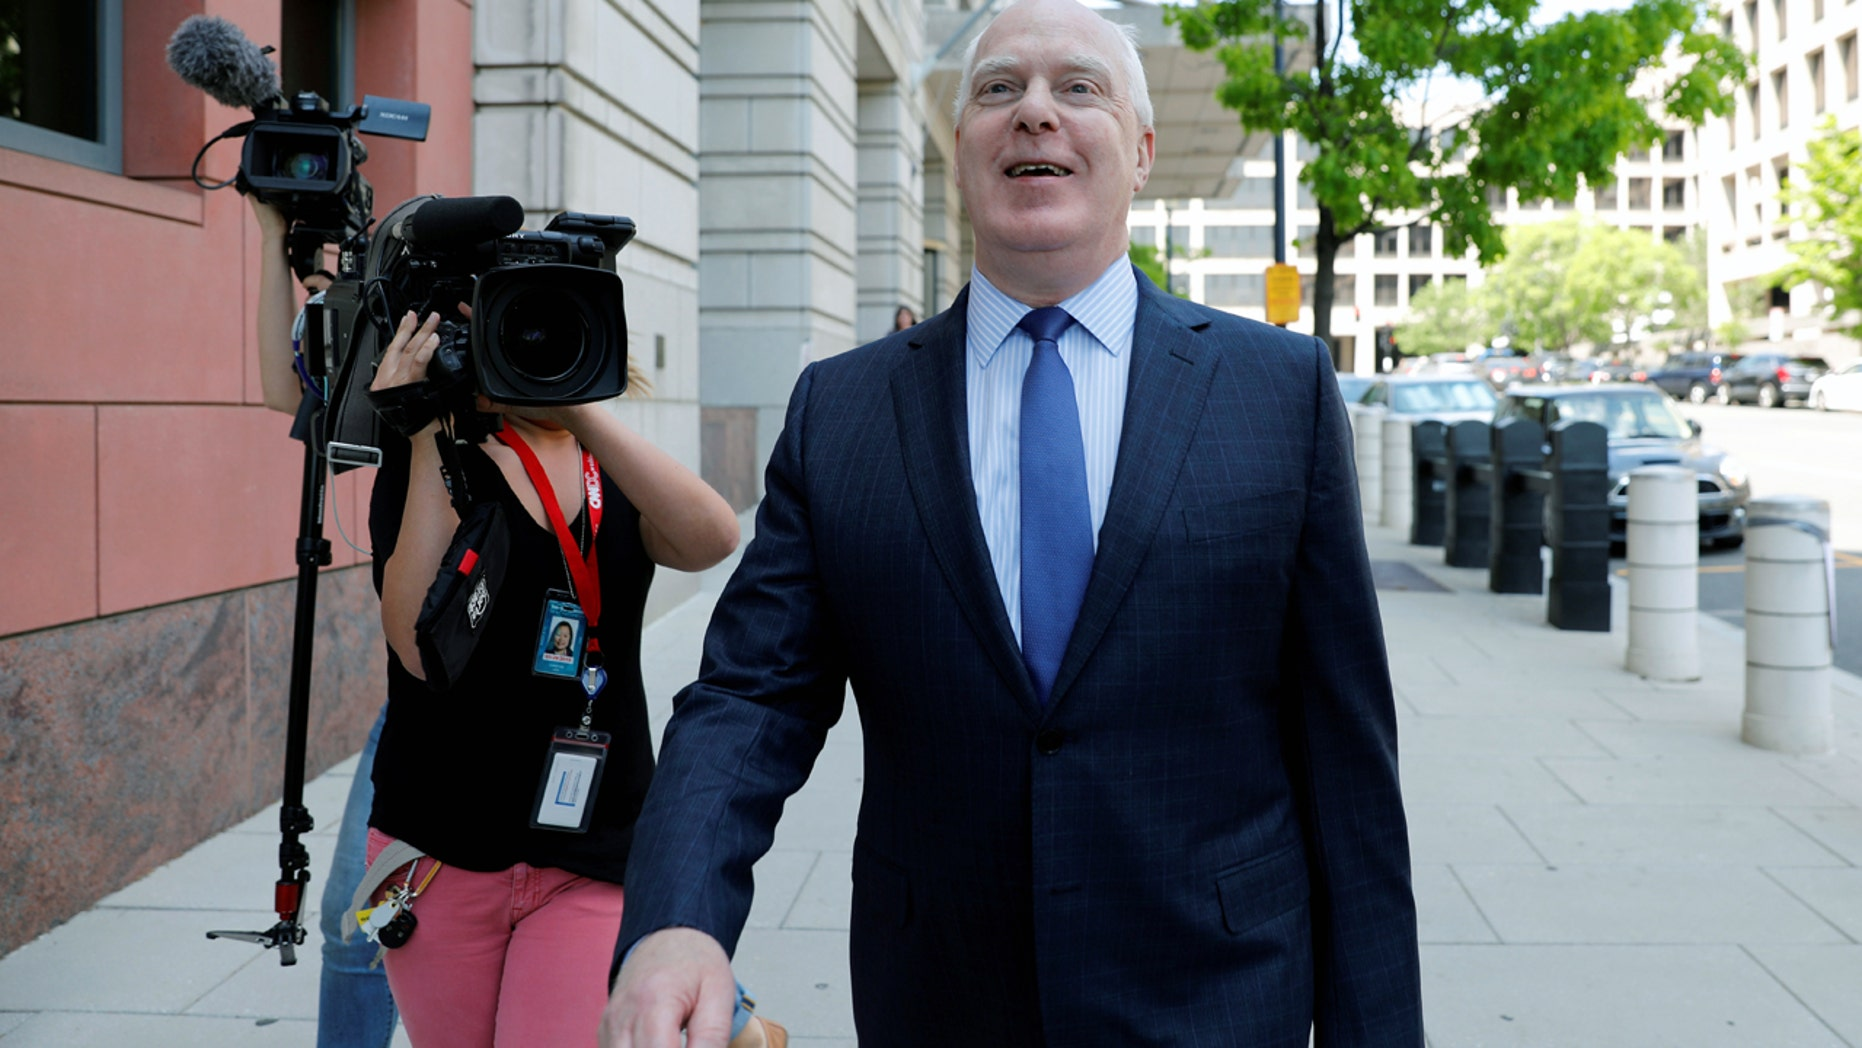 Lawyer Eric Dubelier leaves U.S. District Court in Washington last week after entering a not guilty plea on behalf of Concord Management and Consulting LLC